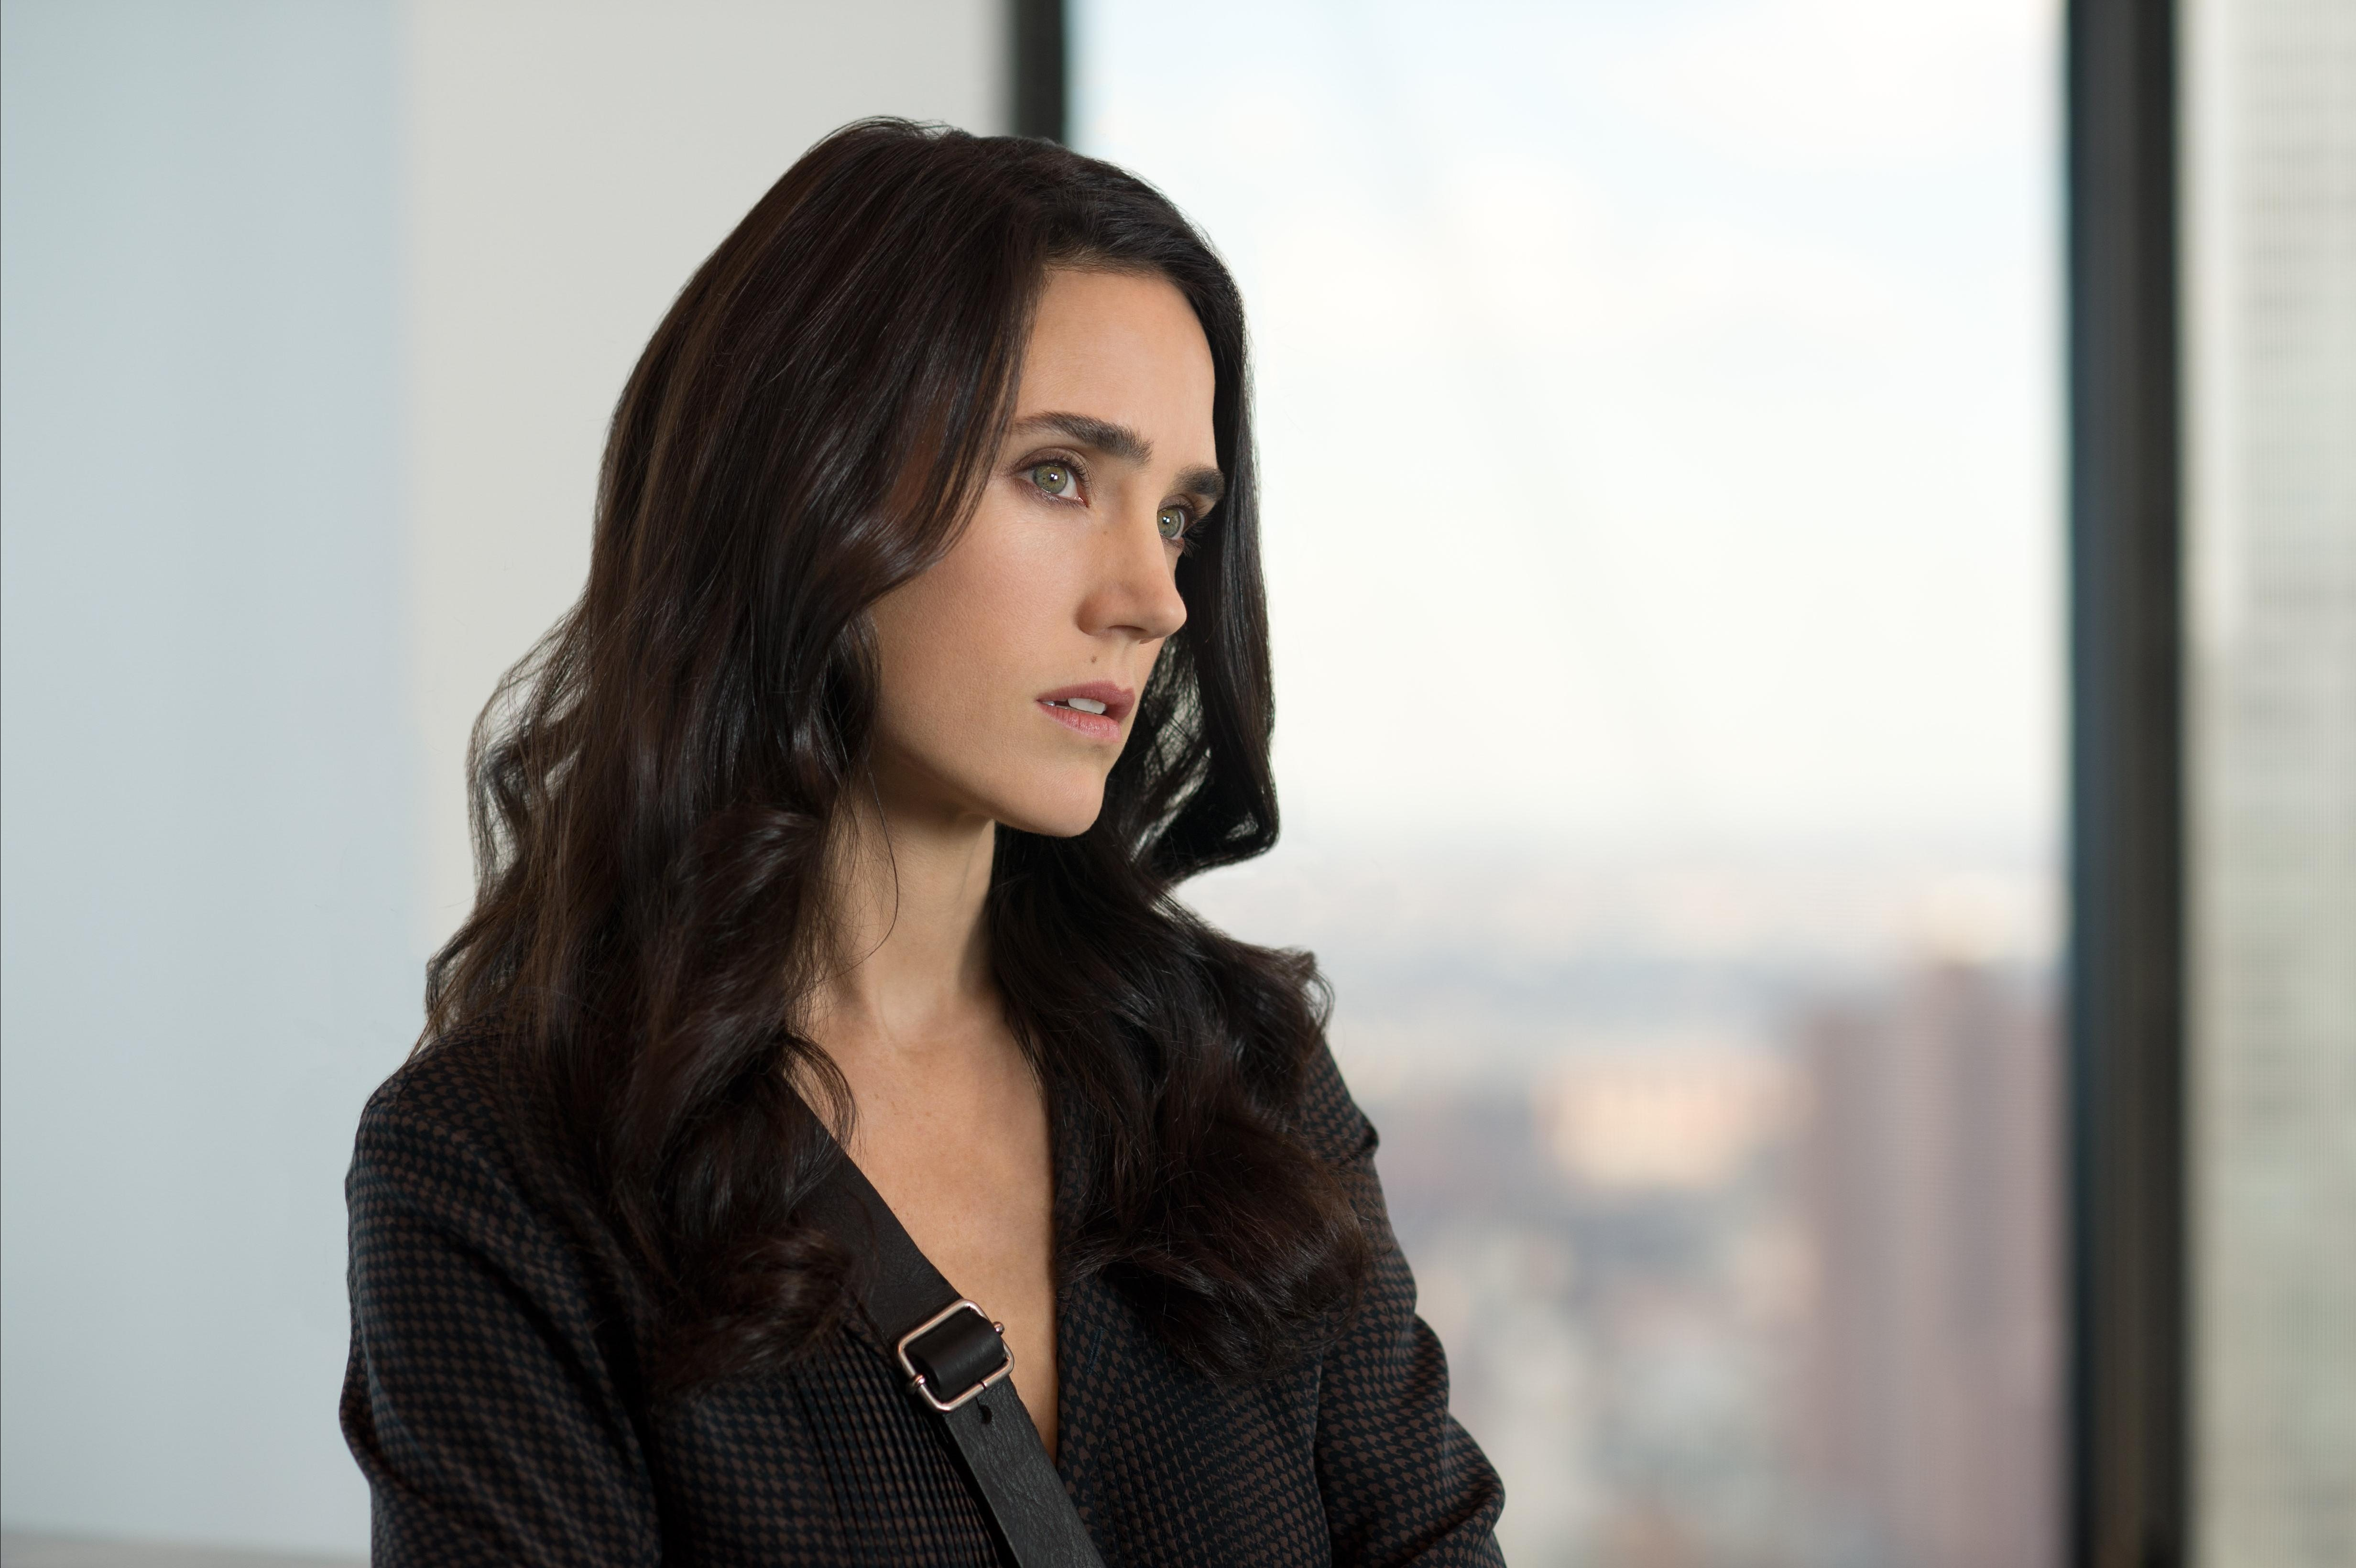 4928x3280 - Jennifer Connelly Wallpapers 8